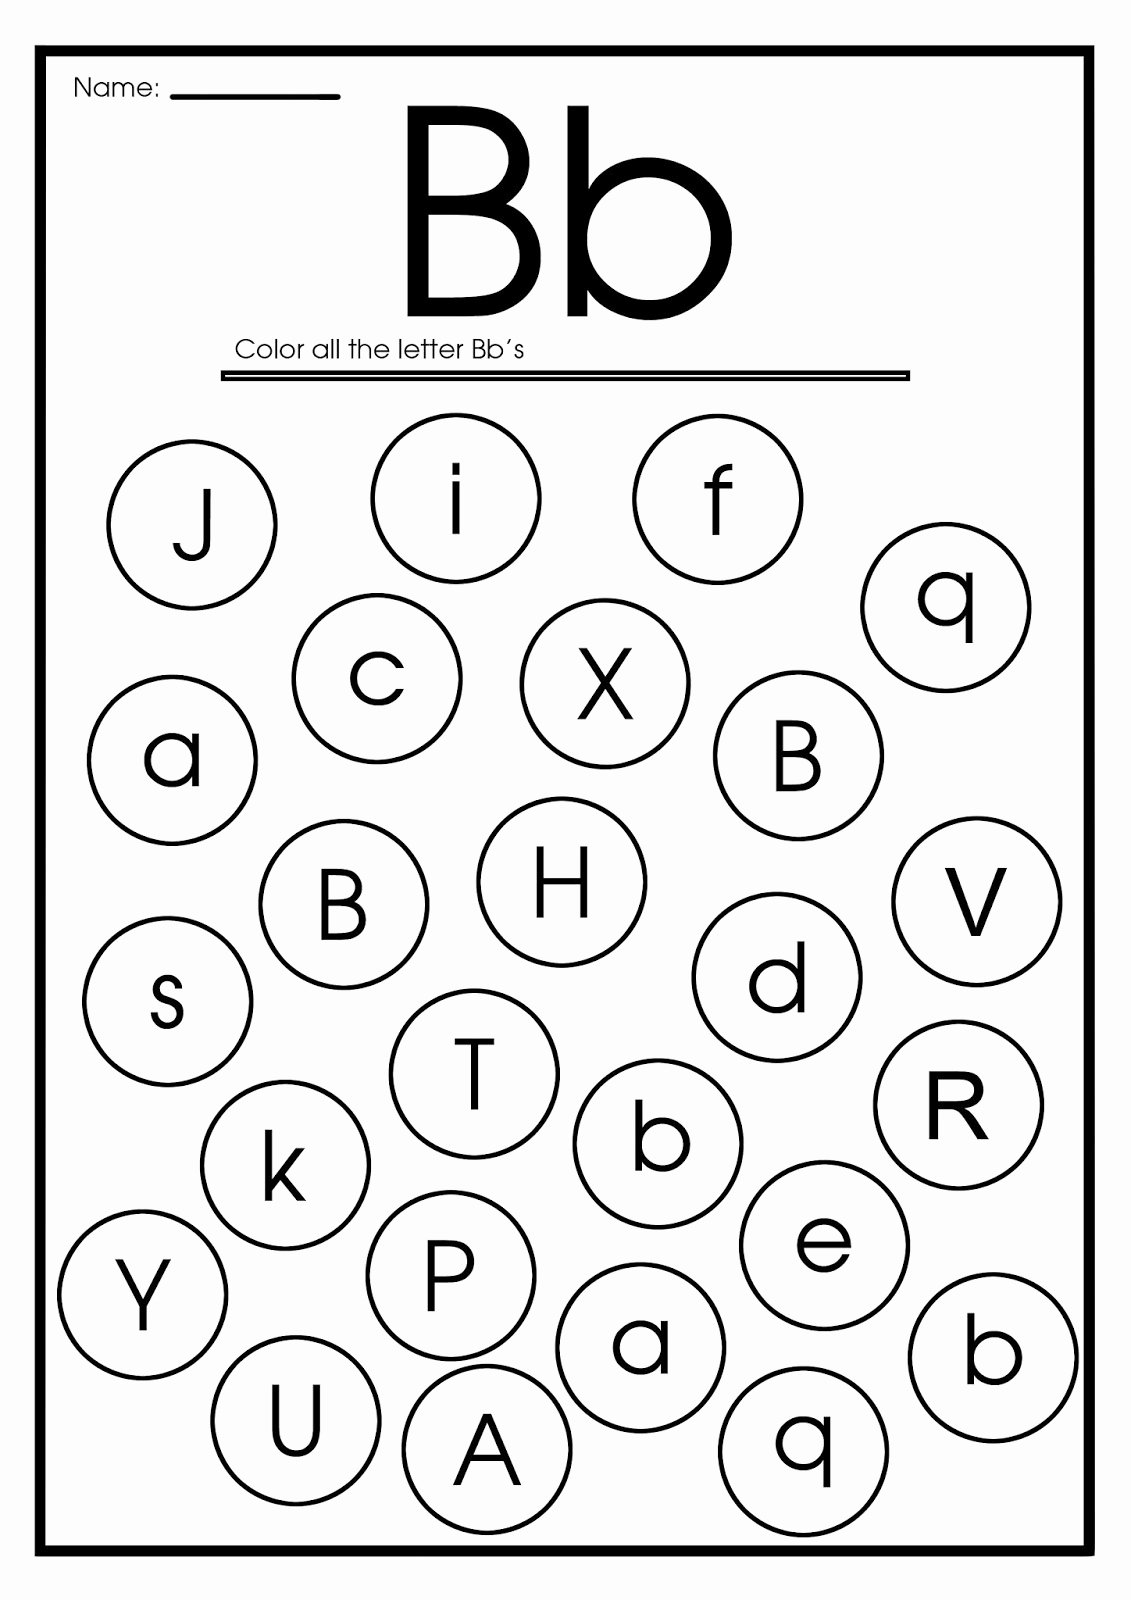 Letter B Printable Lovely Letter B Worksheets Flash Cards Coloring Pages